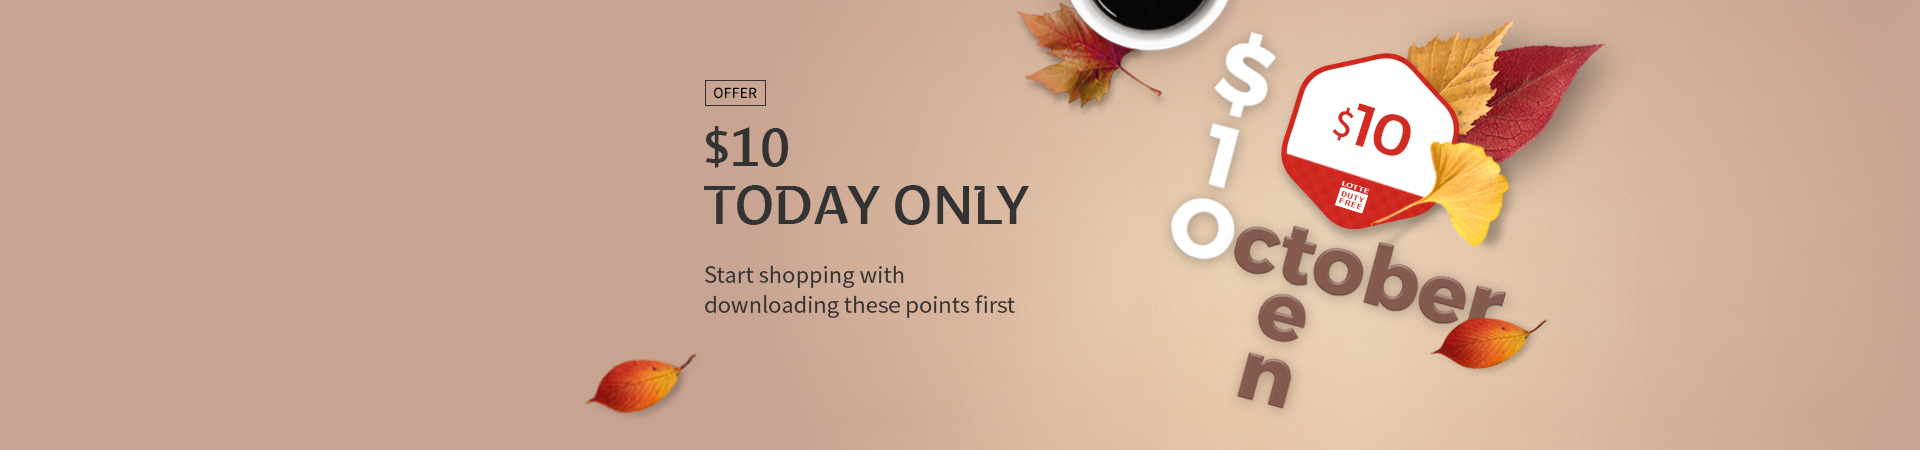 10/17 Today Only! $10 Reward points